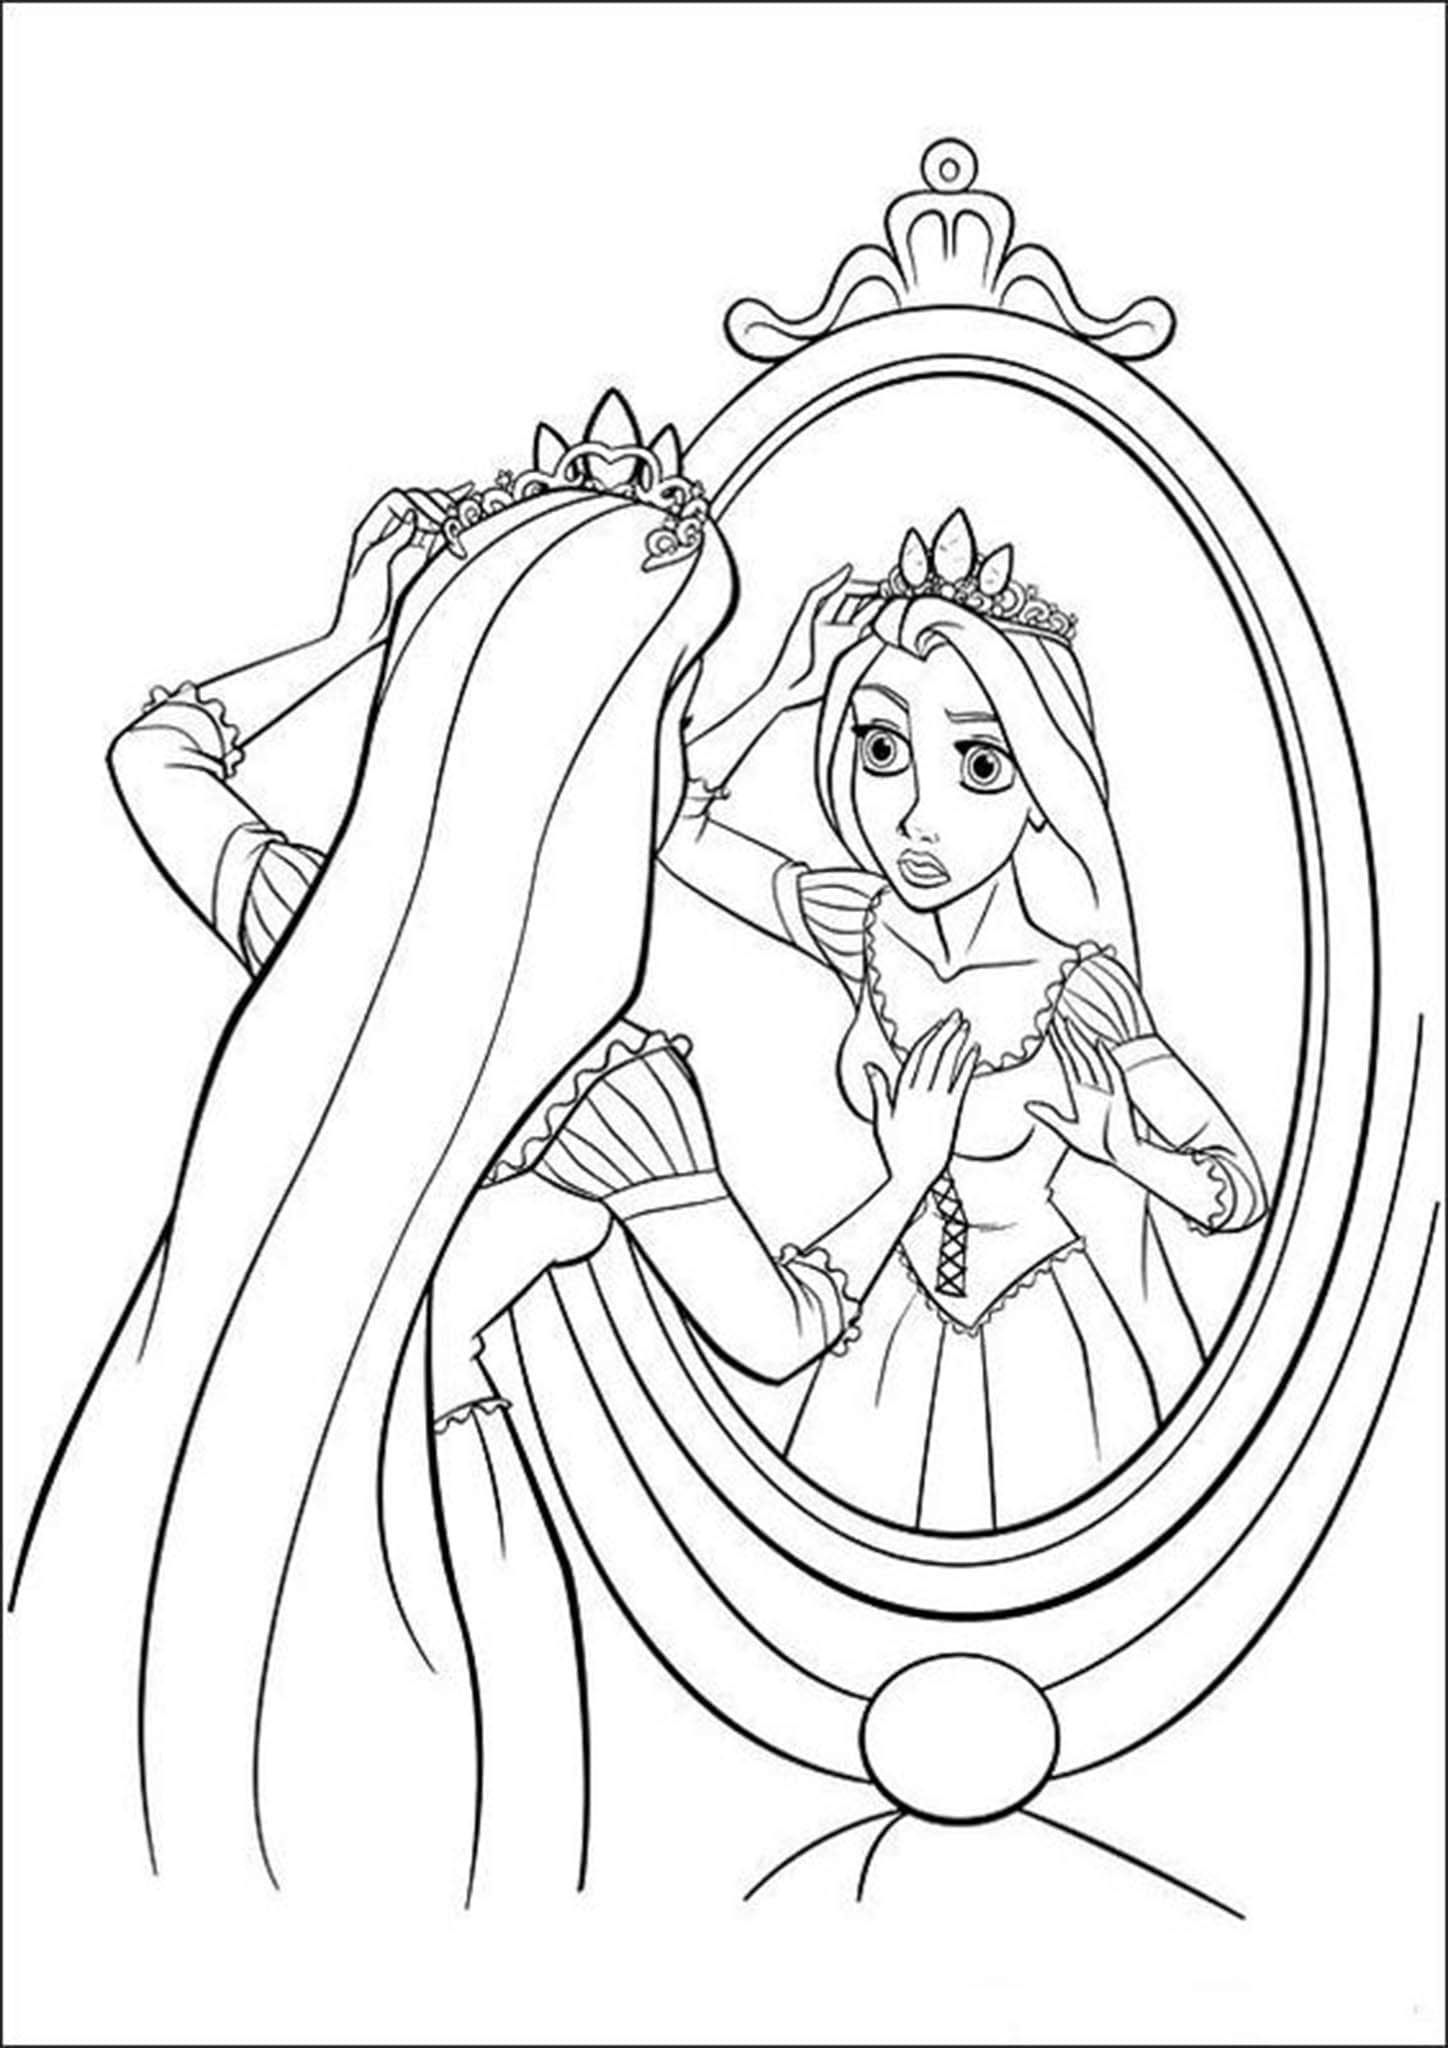 Free Easy To Print Tangled Coloring Pages In 2020 Tangled Coloring Pages Coloring Pages Tracing Worksheets Preschool